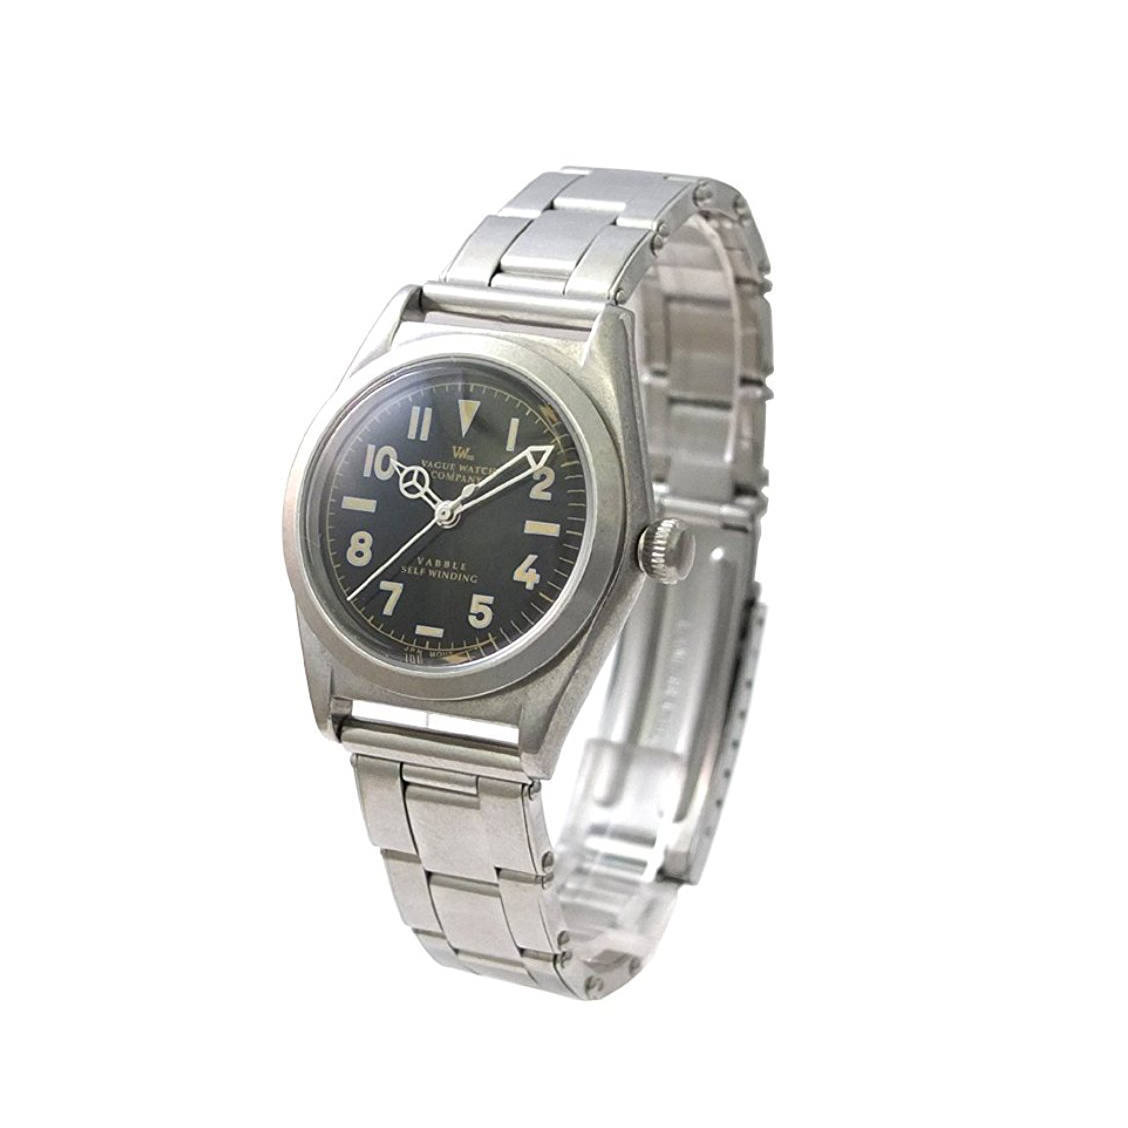 VAGUE WATCH CO._d0100143_14191567.jpg